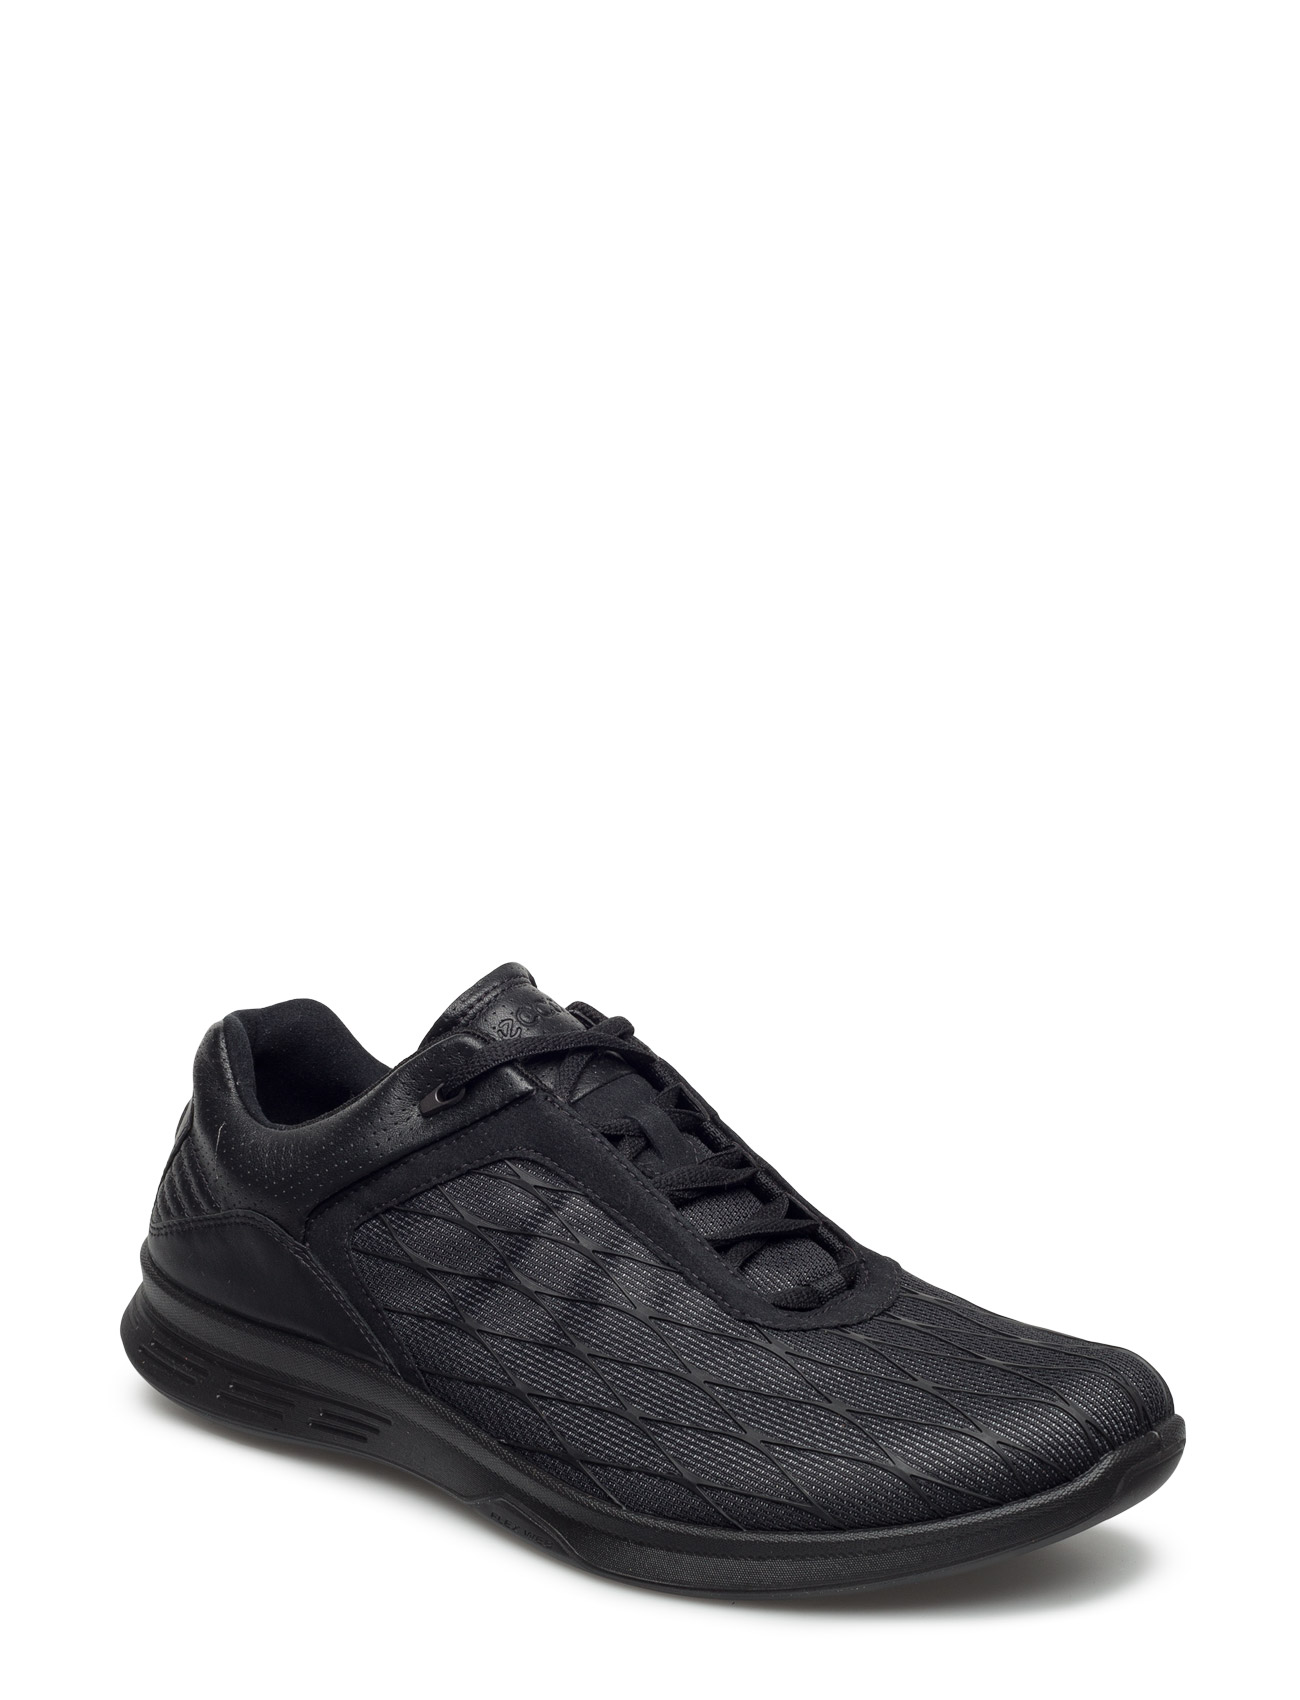 Exceed Men'S ECCO Sneakers til Mænd i Sort